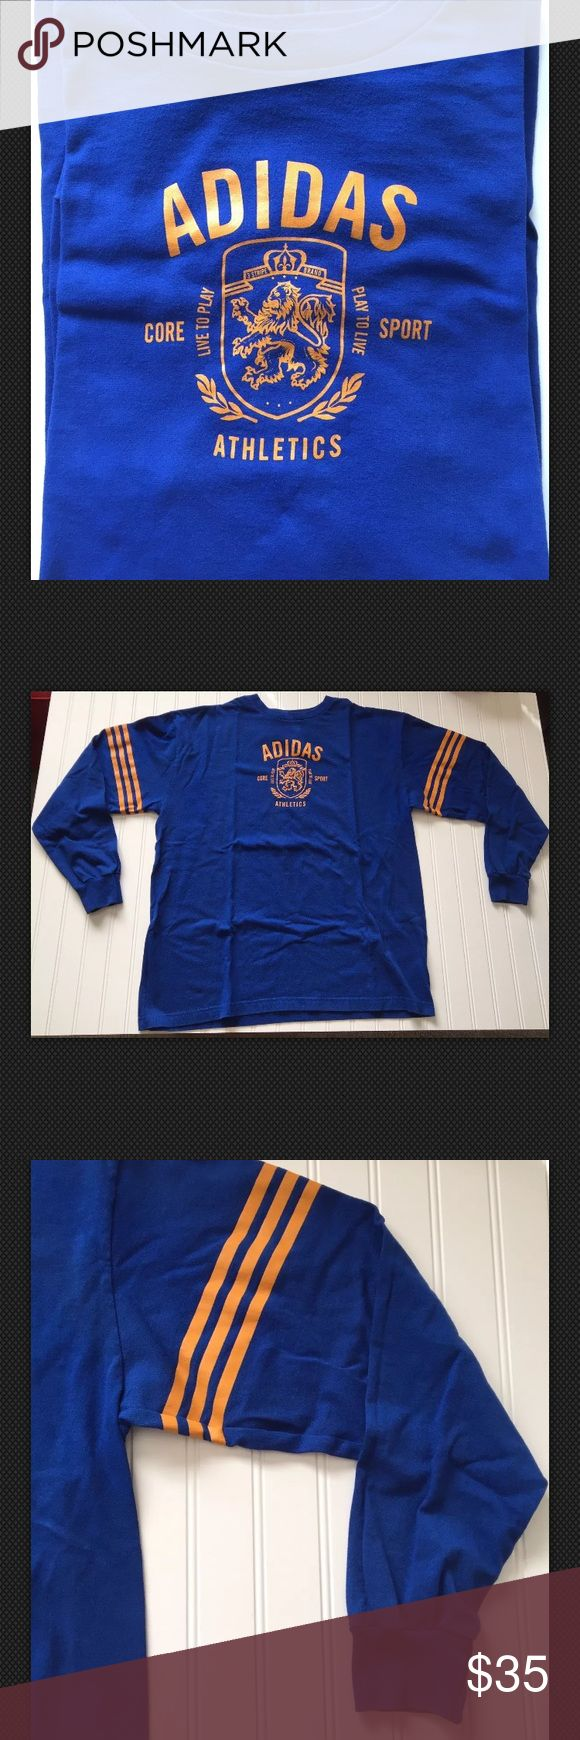 ADIDAS Blue/Orange-Chest Crest  XL-NICE  EUC! Vintage? ADIDAS Long Sleeve T! Solid Blue w/ 3 Orange stripes on each arm, orange chest crest & lettering! Very cool shirt! Excellent condition! Soft! Size XL Armpit to armpit: 25 inches Top back collar to bottom of shirt: 28 1/2 inches Top shoulder hem to tip of sleeve cuff: 25 inches adidas Shirts Polos